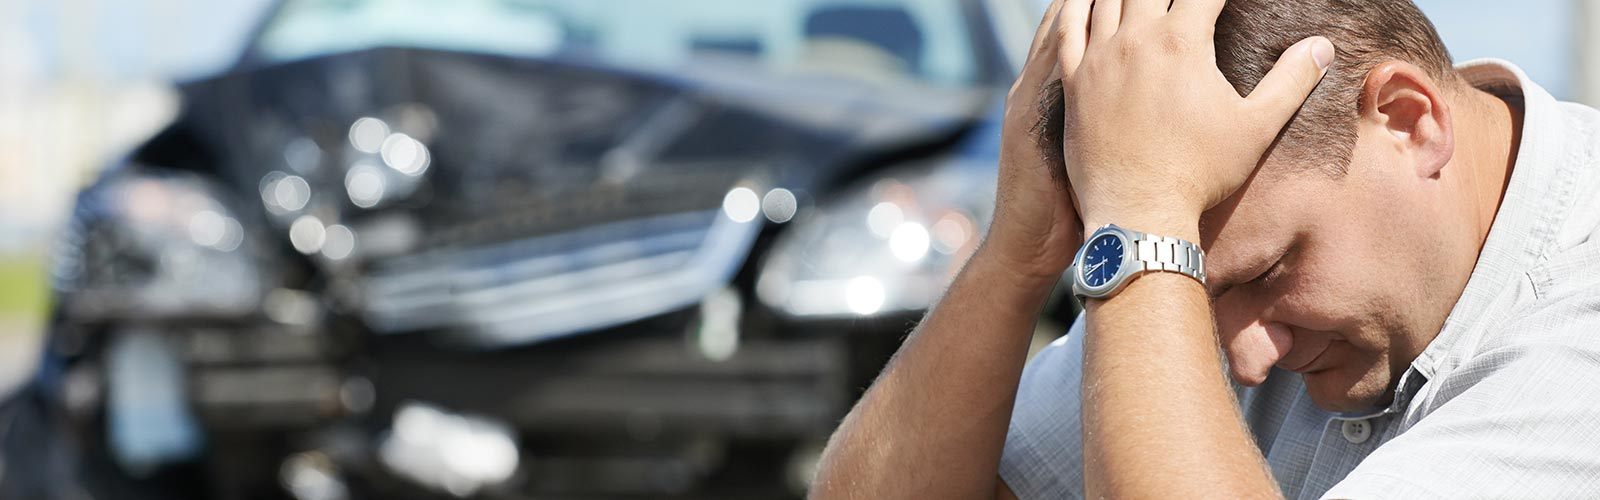 Man Needing an Attorney After a Car Accident